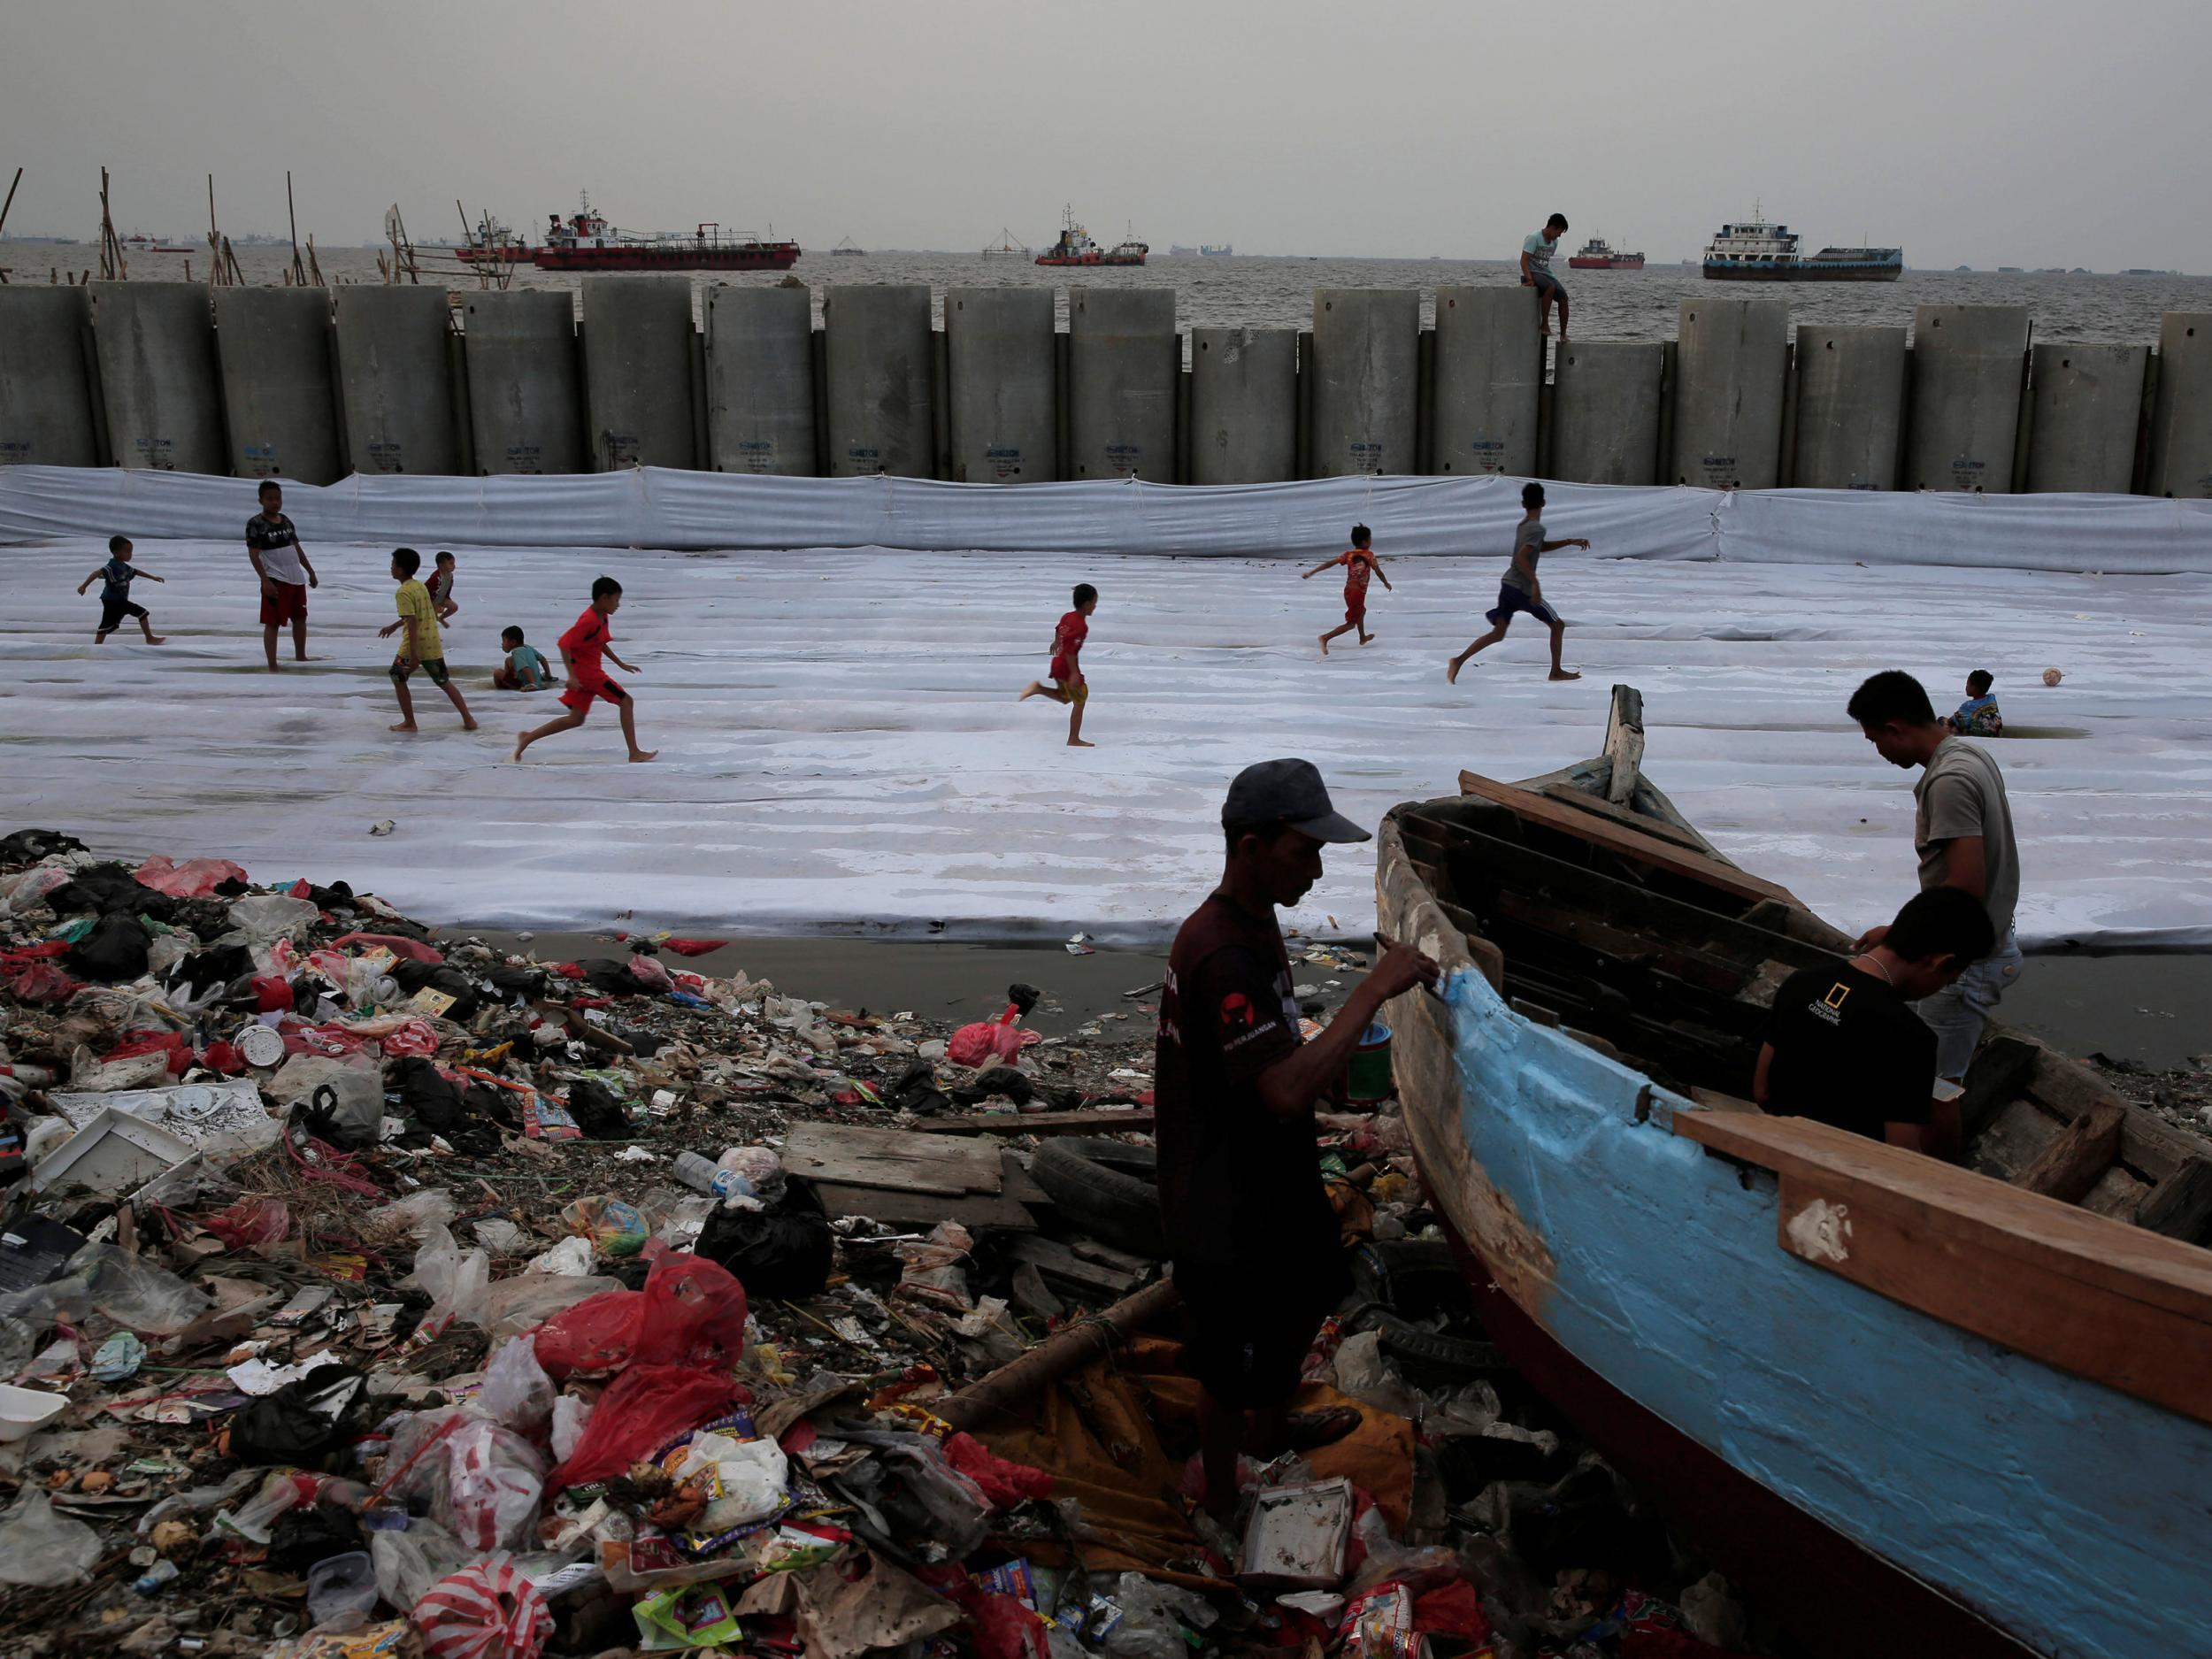 Indonesia's sinking shoreline: Climate change and environmental destruction cause daily flooding